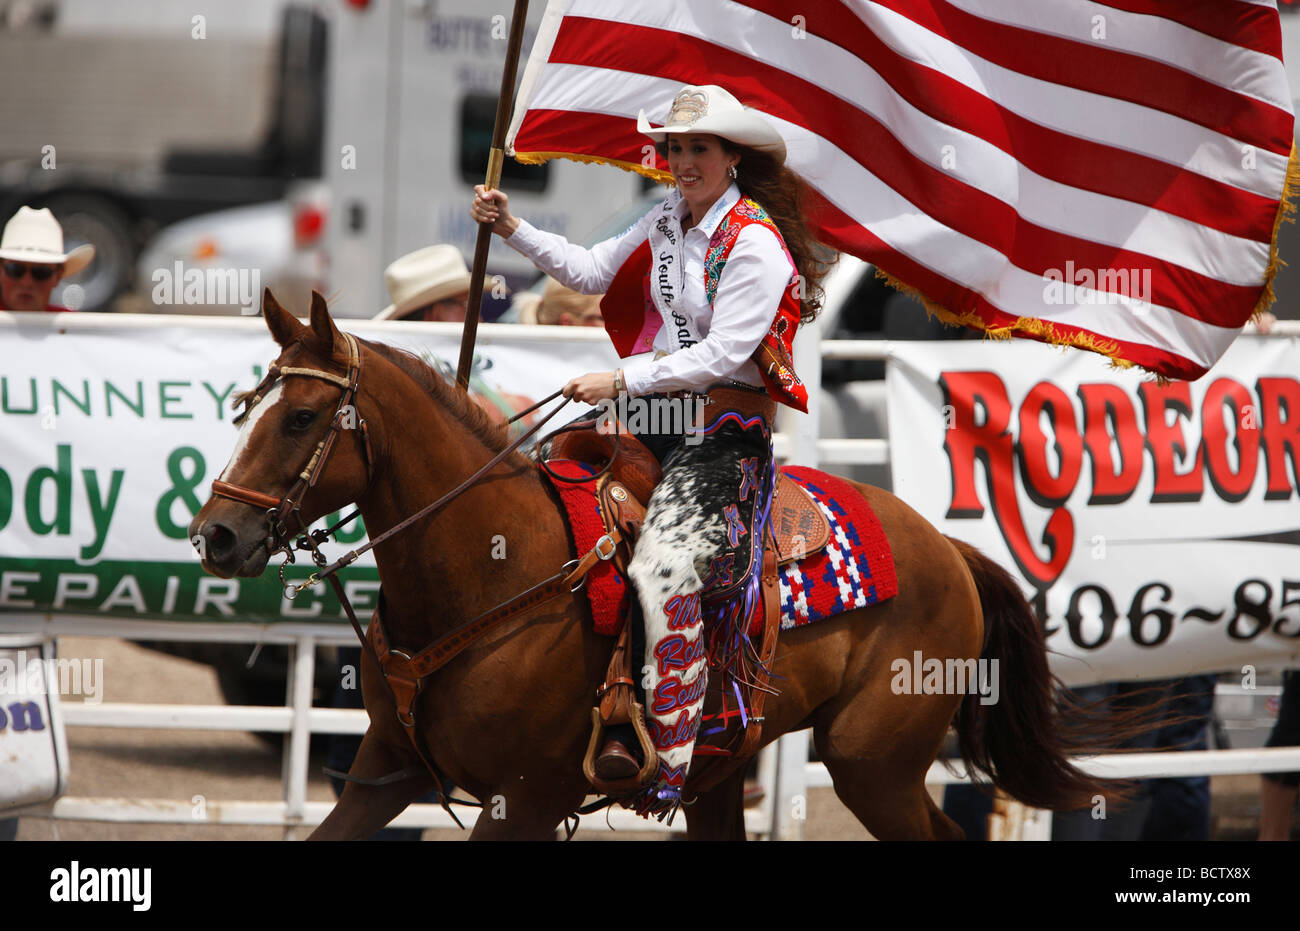 American Rodeo Stock Photos Amp American Rodeo Stock Images